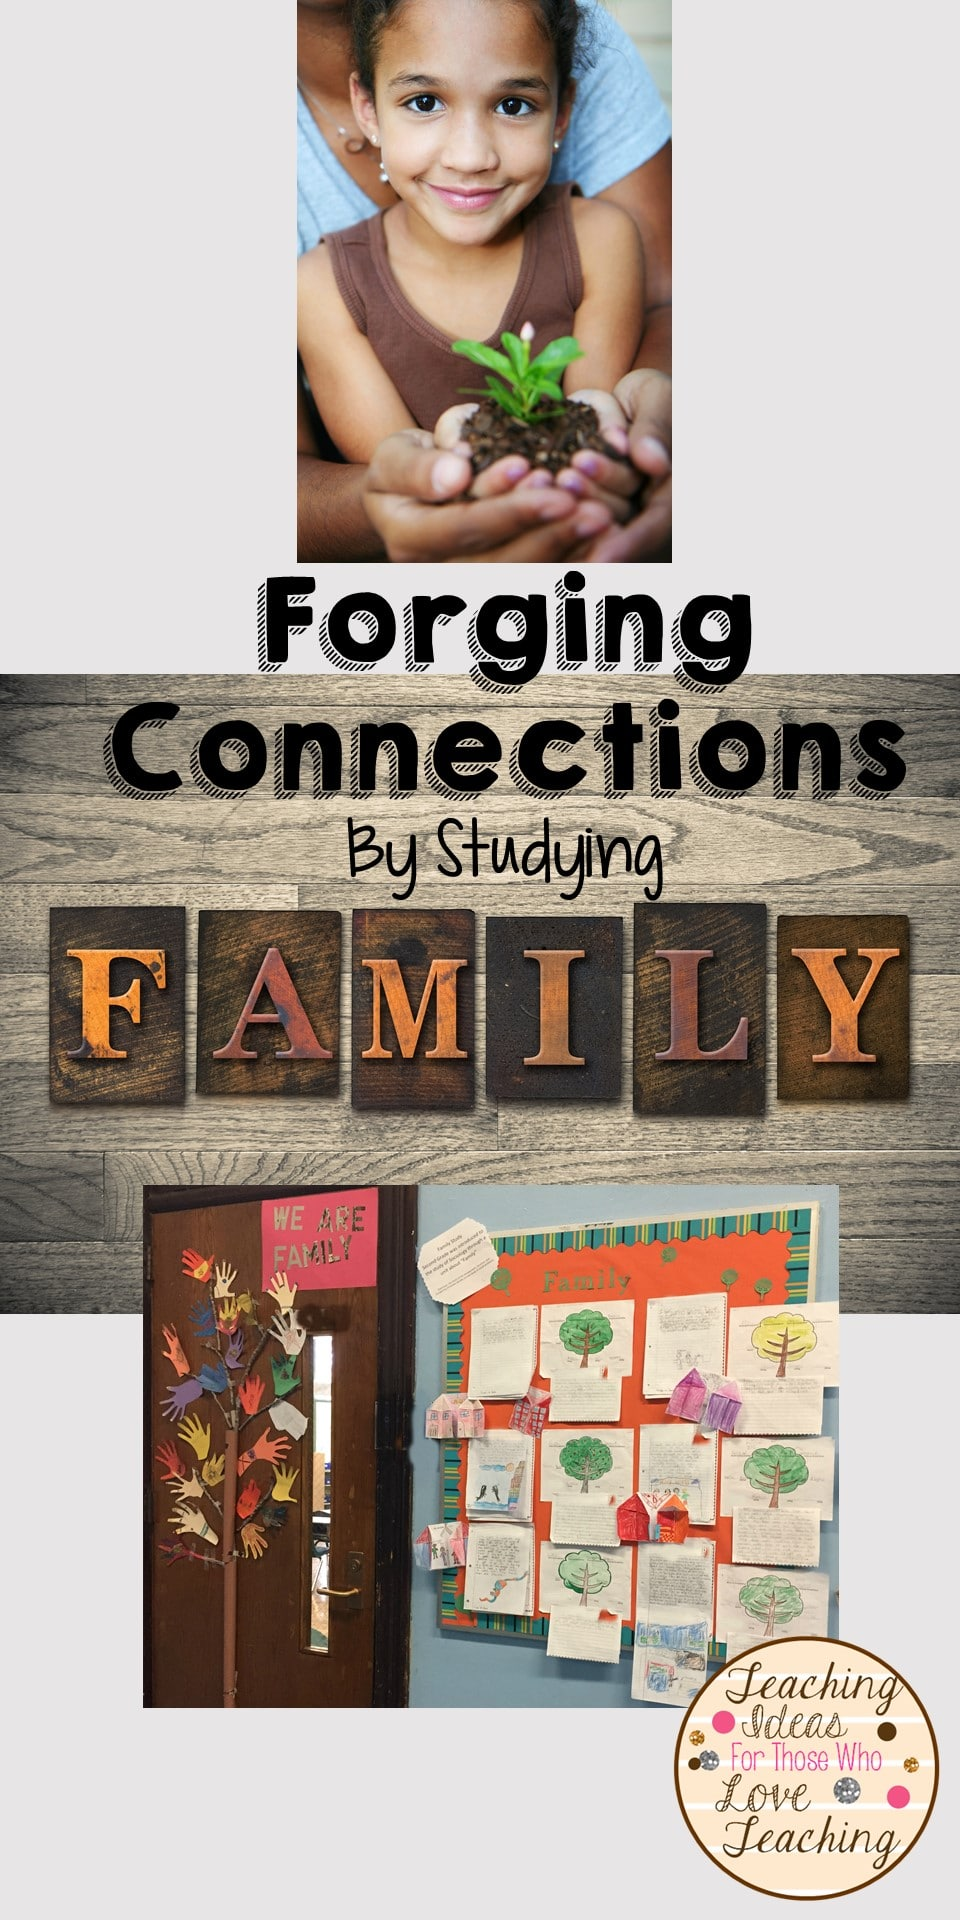 Forging Connections By Studying Family